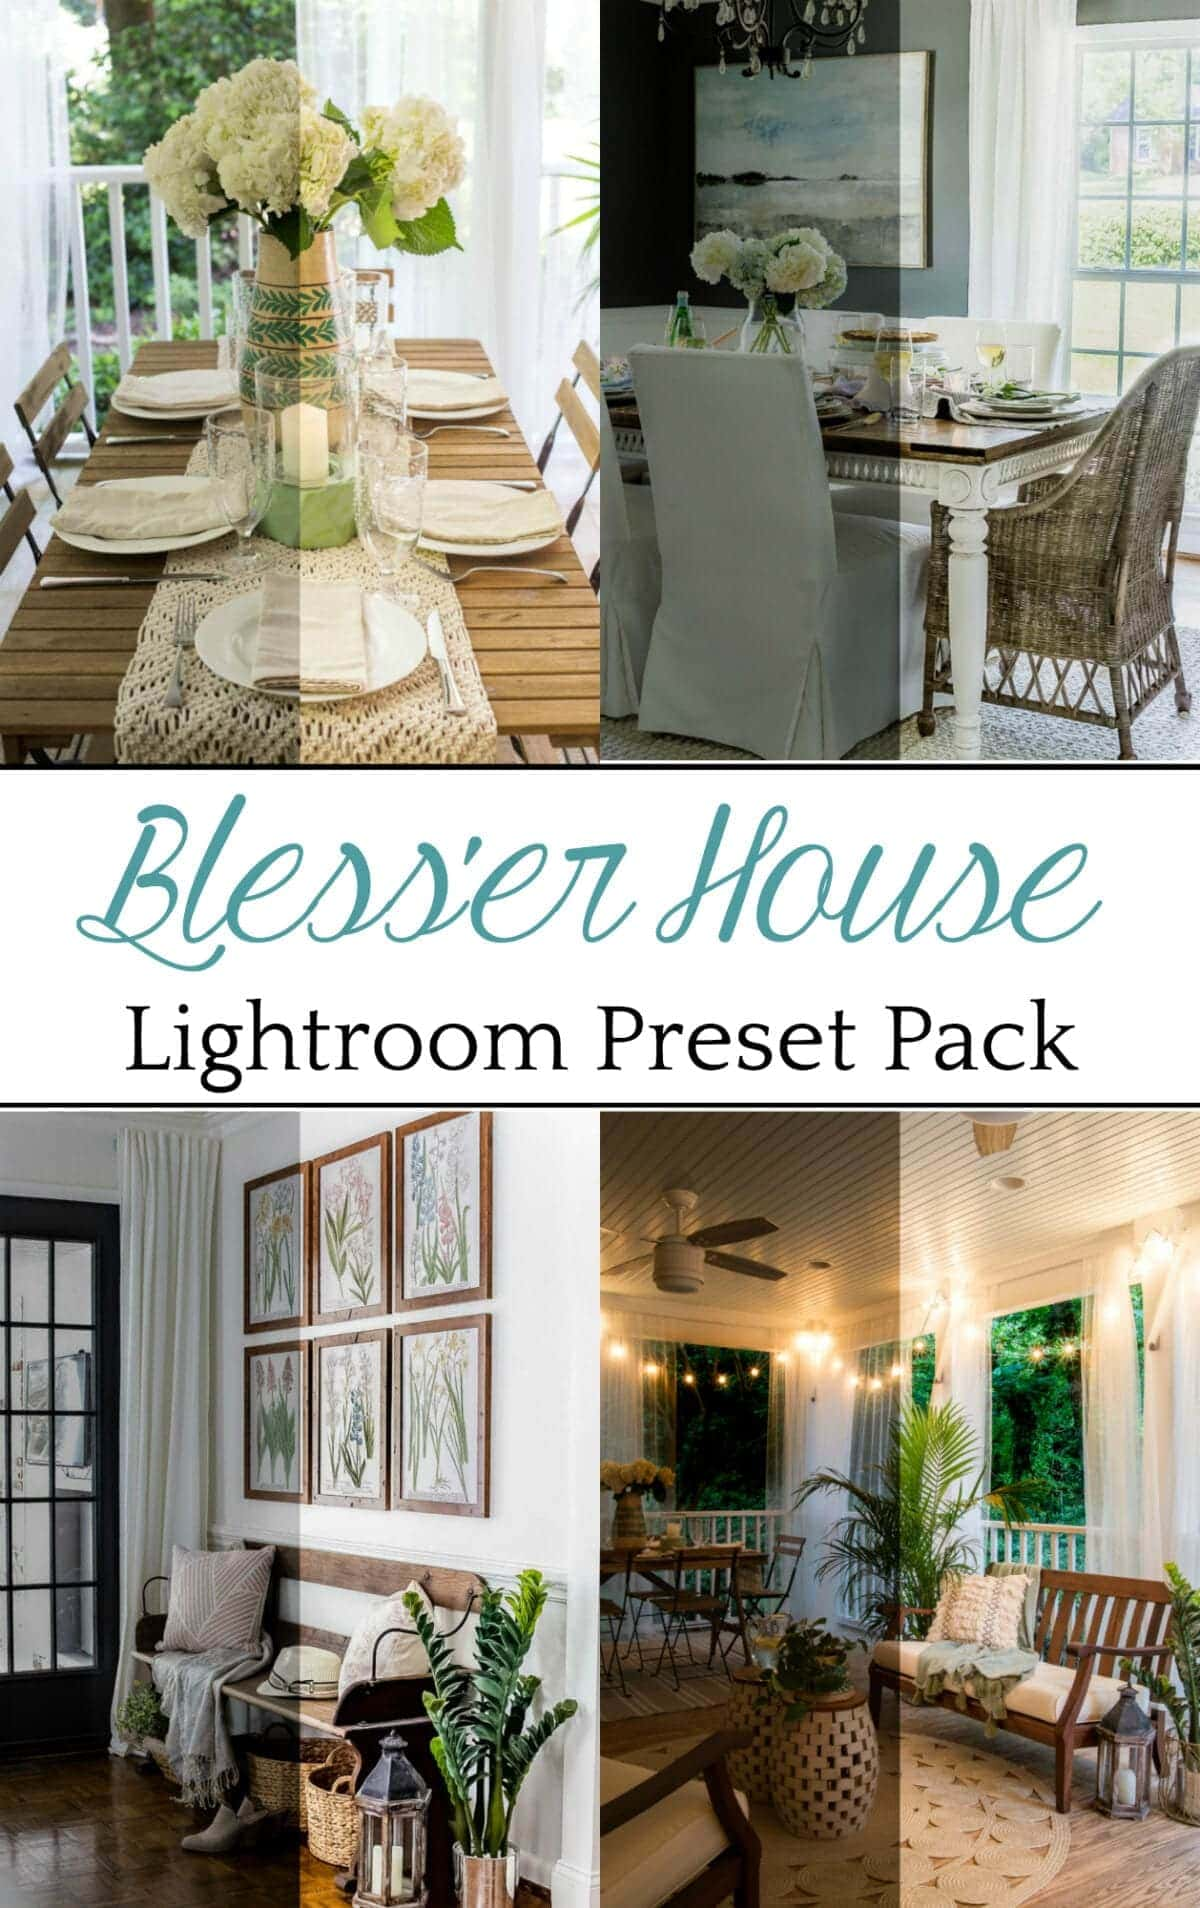 Bless'er House Lightroom Presets | Lightroom presets that make images look true-to-life white balanced to create photos that are vibrant, crisp, and bright as if beautiful, clean light is streaming right into your space with the touch of a button.